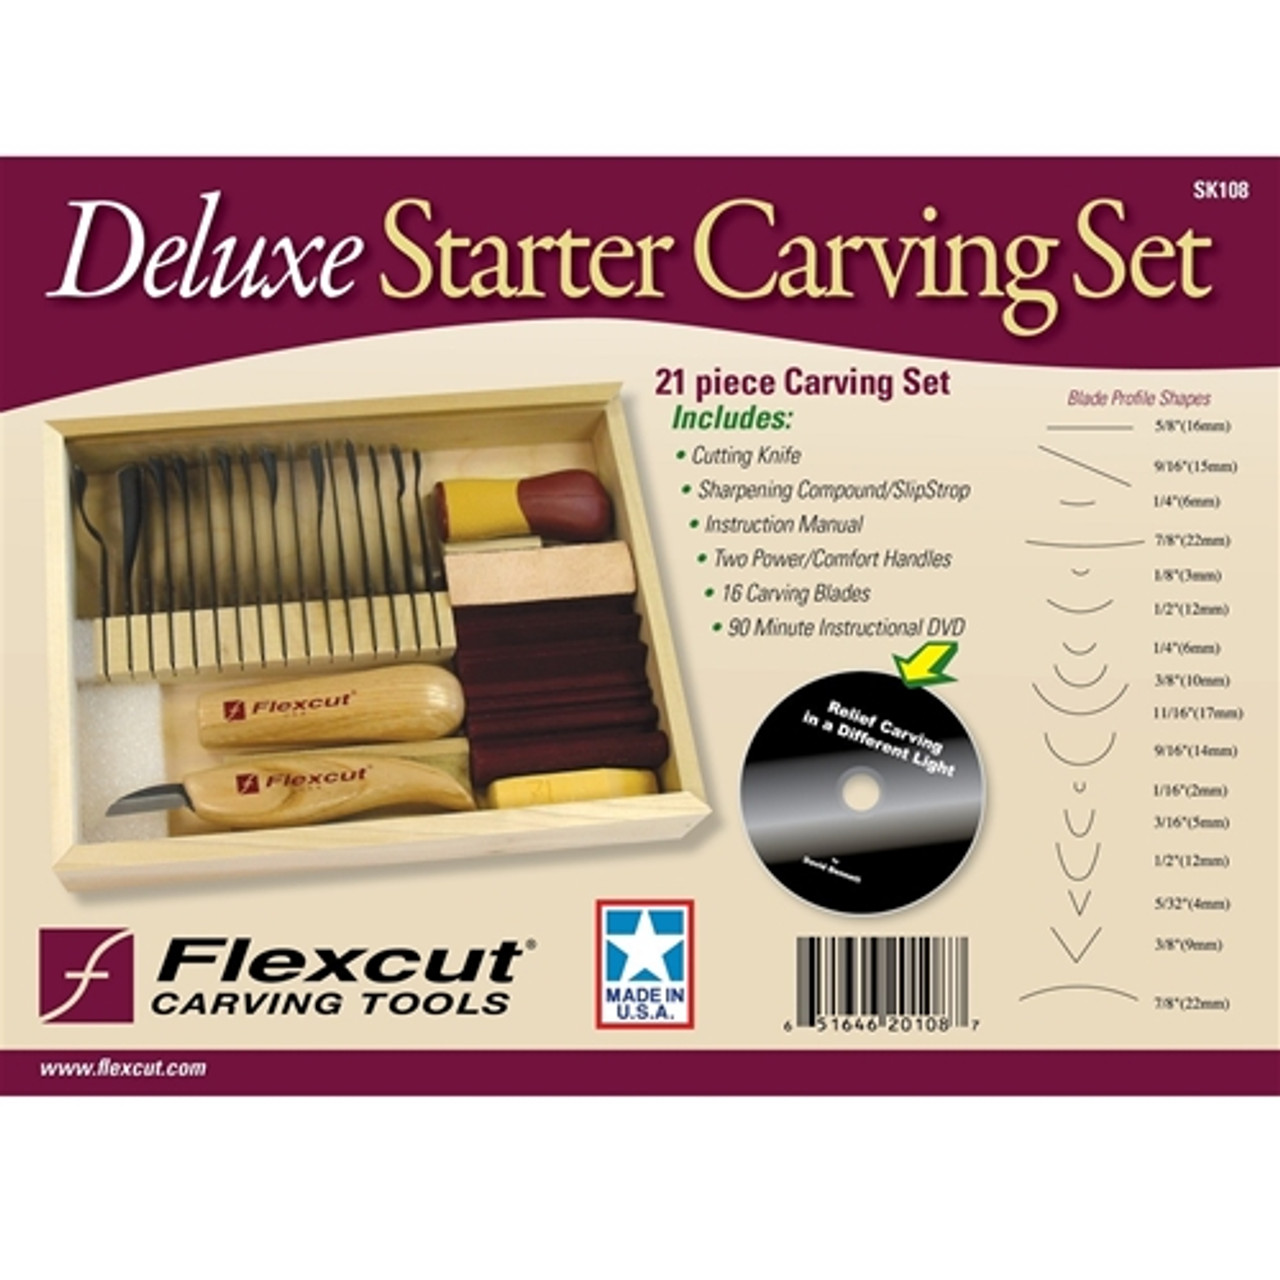 Flexcut 21 Pc. Deluxe Starter Set  cover showing carving tools that are in the set.